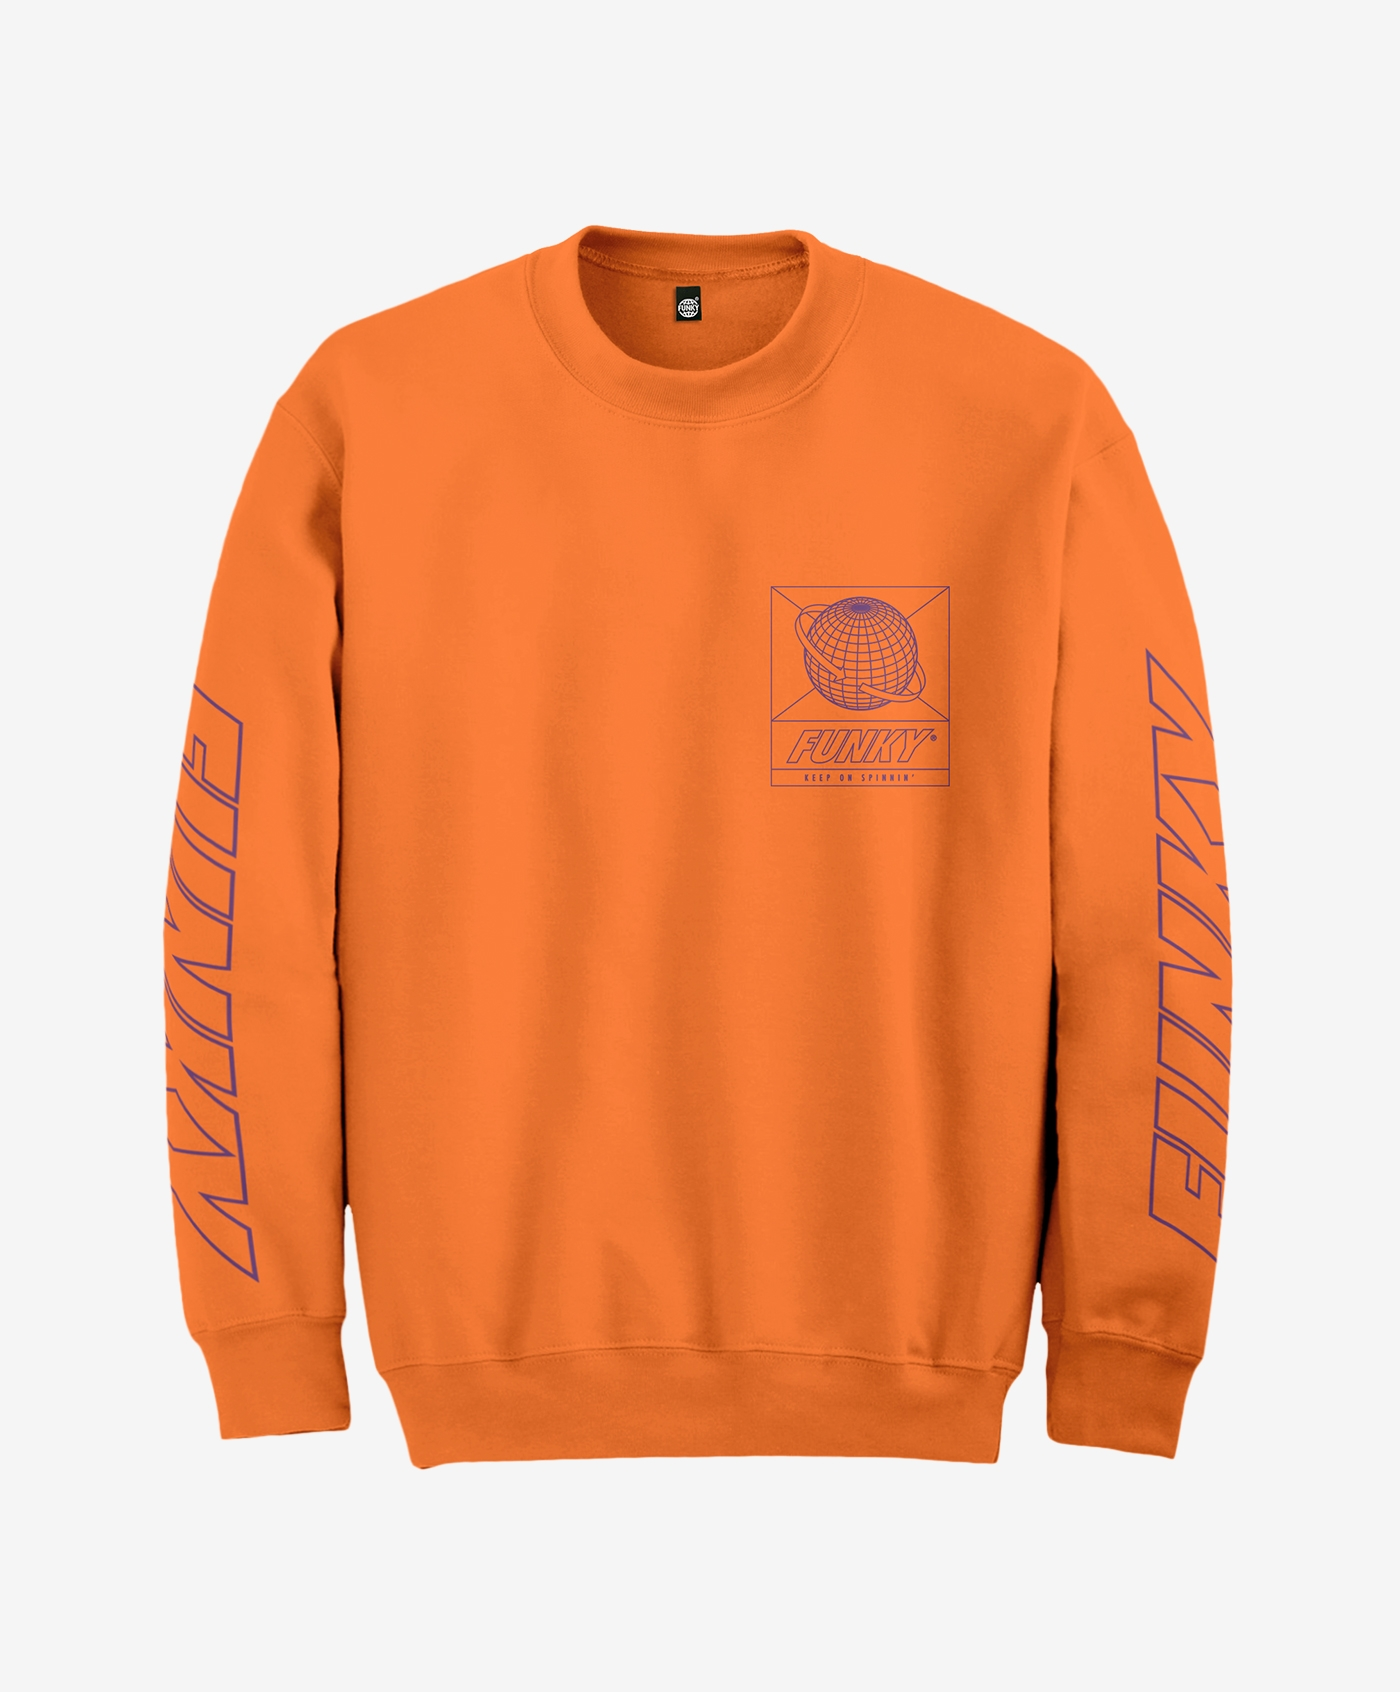 RADICAL-CREWNECK-FRONT-ORANGE